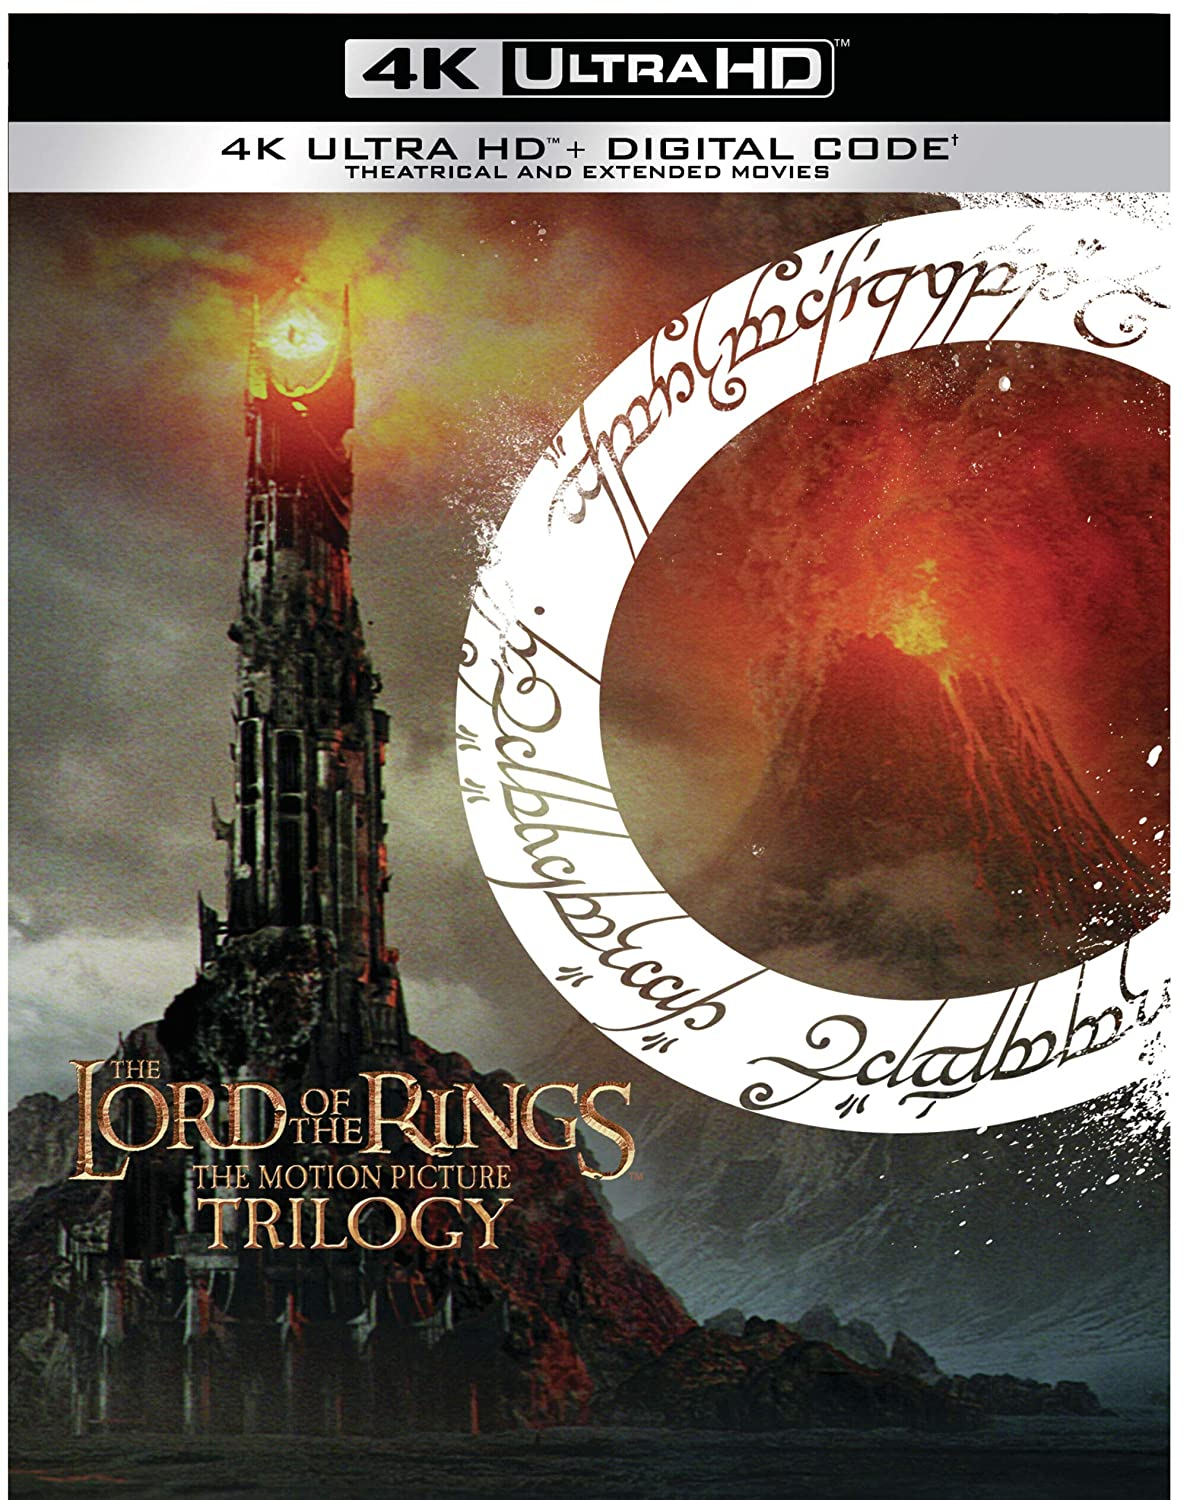 The Lord of the Rings: Trilogy Th quality assurance Picture Challenge lowest price Extended Motion